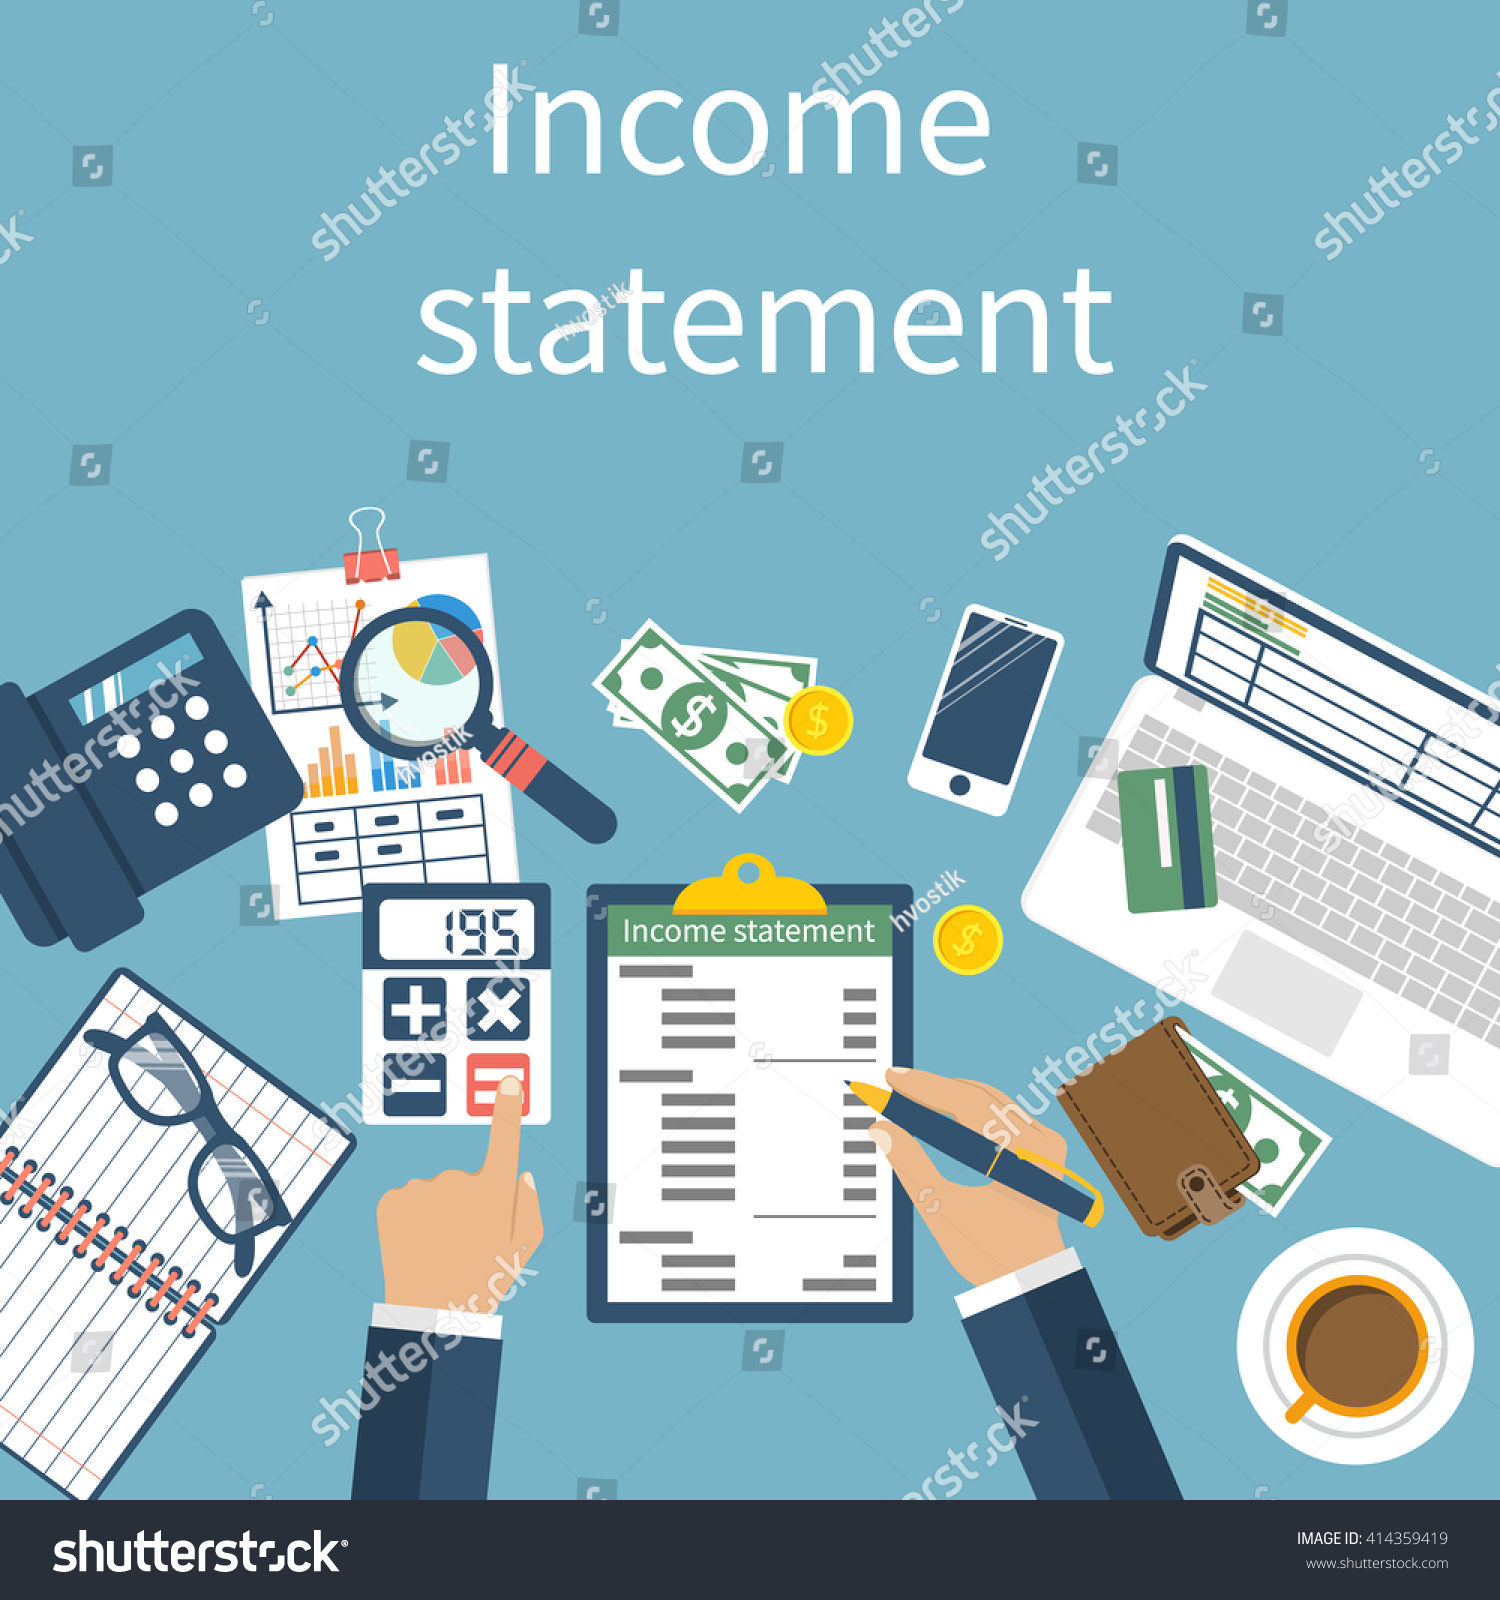 Accounting Administration Resolution by Quickbooks Internet hosting Suppliers